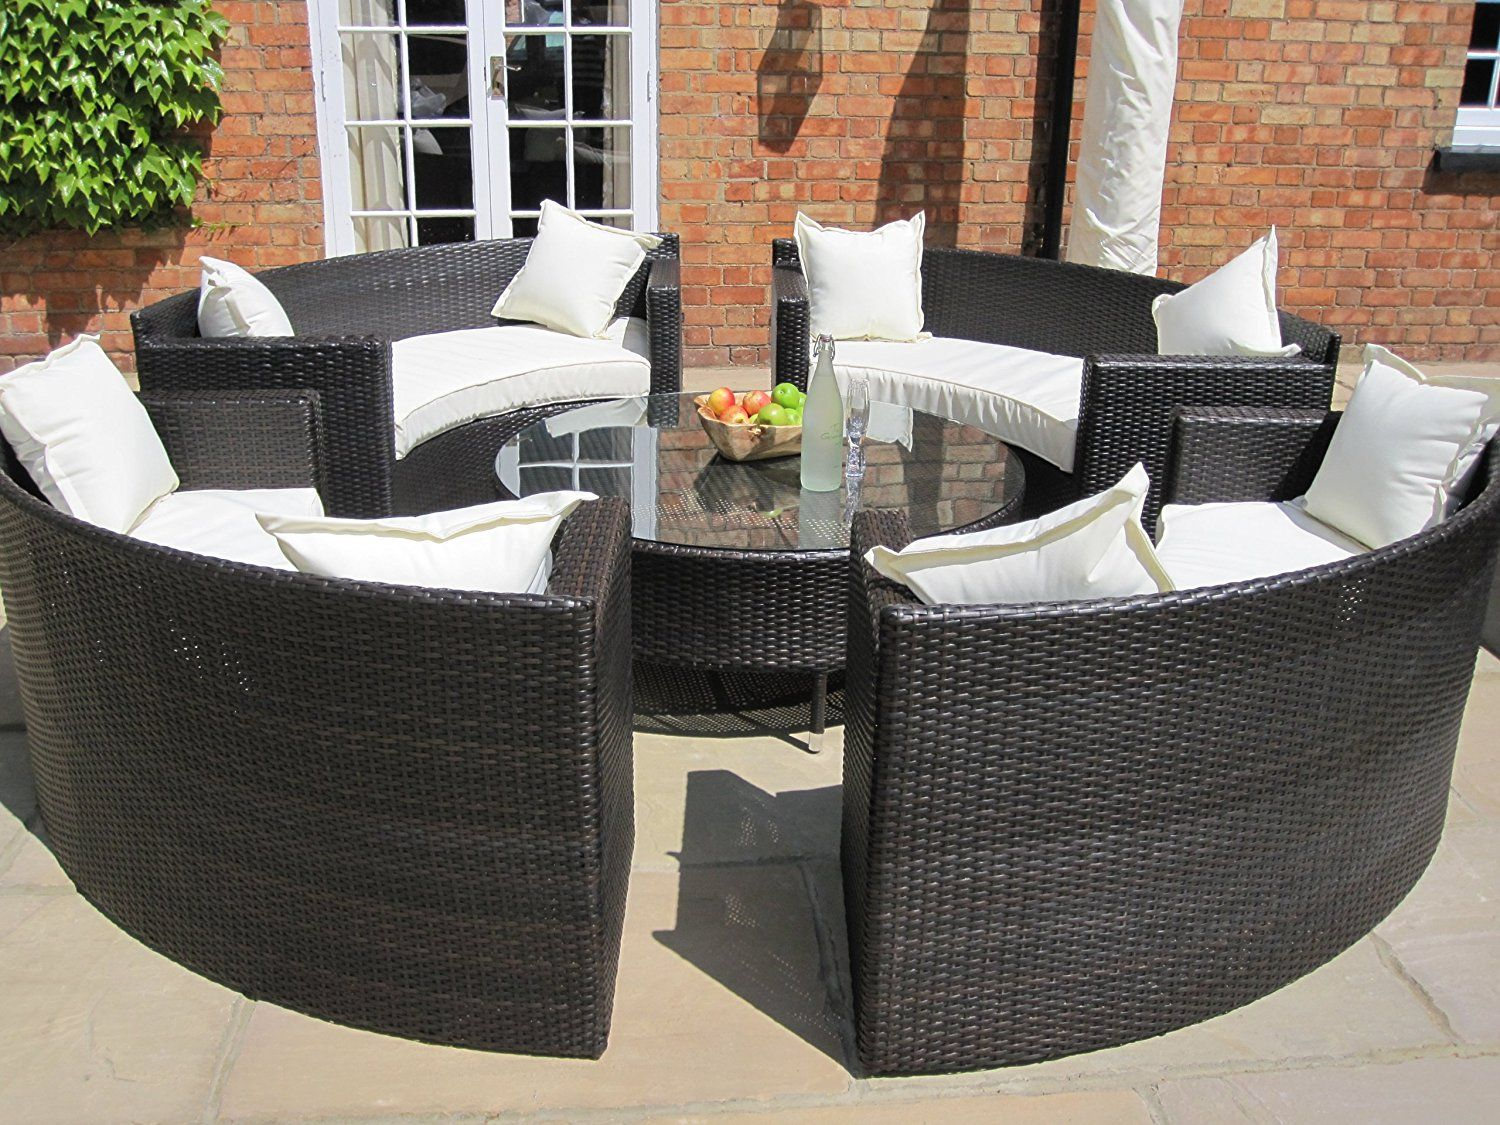 Durable outside rattan garden furniture – darbylanefurniture.com